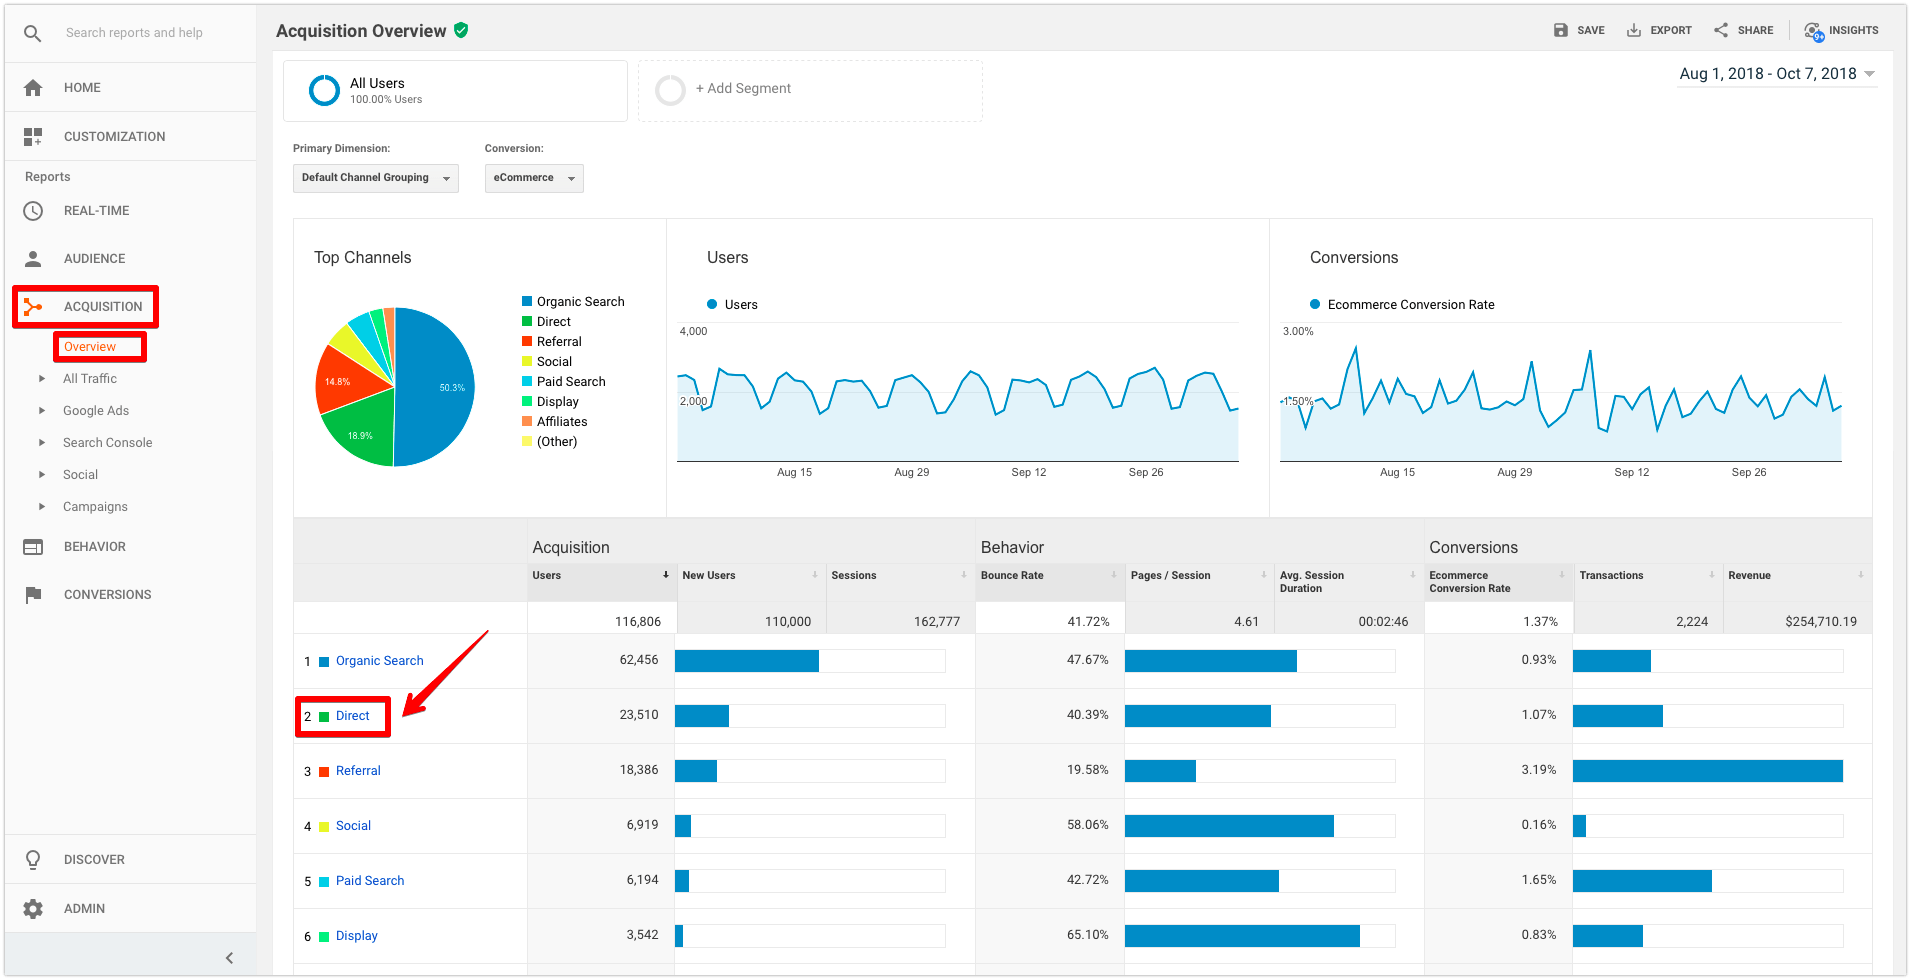 google analytics direct traffic acquisition overview